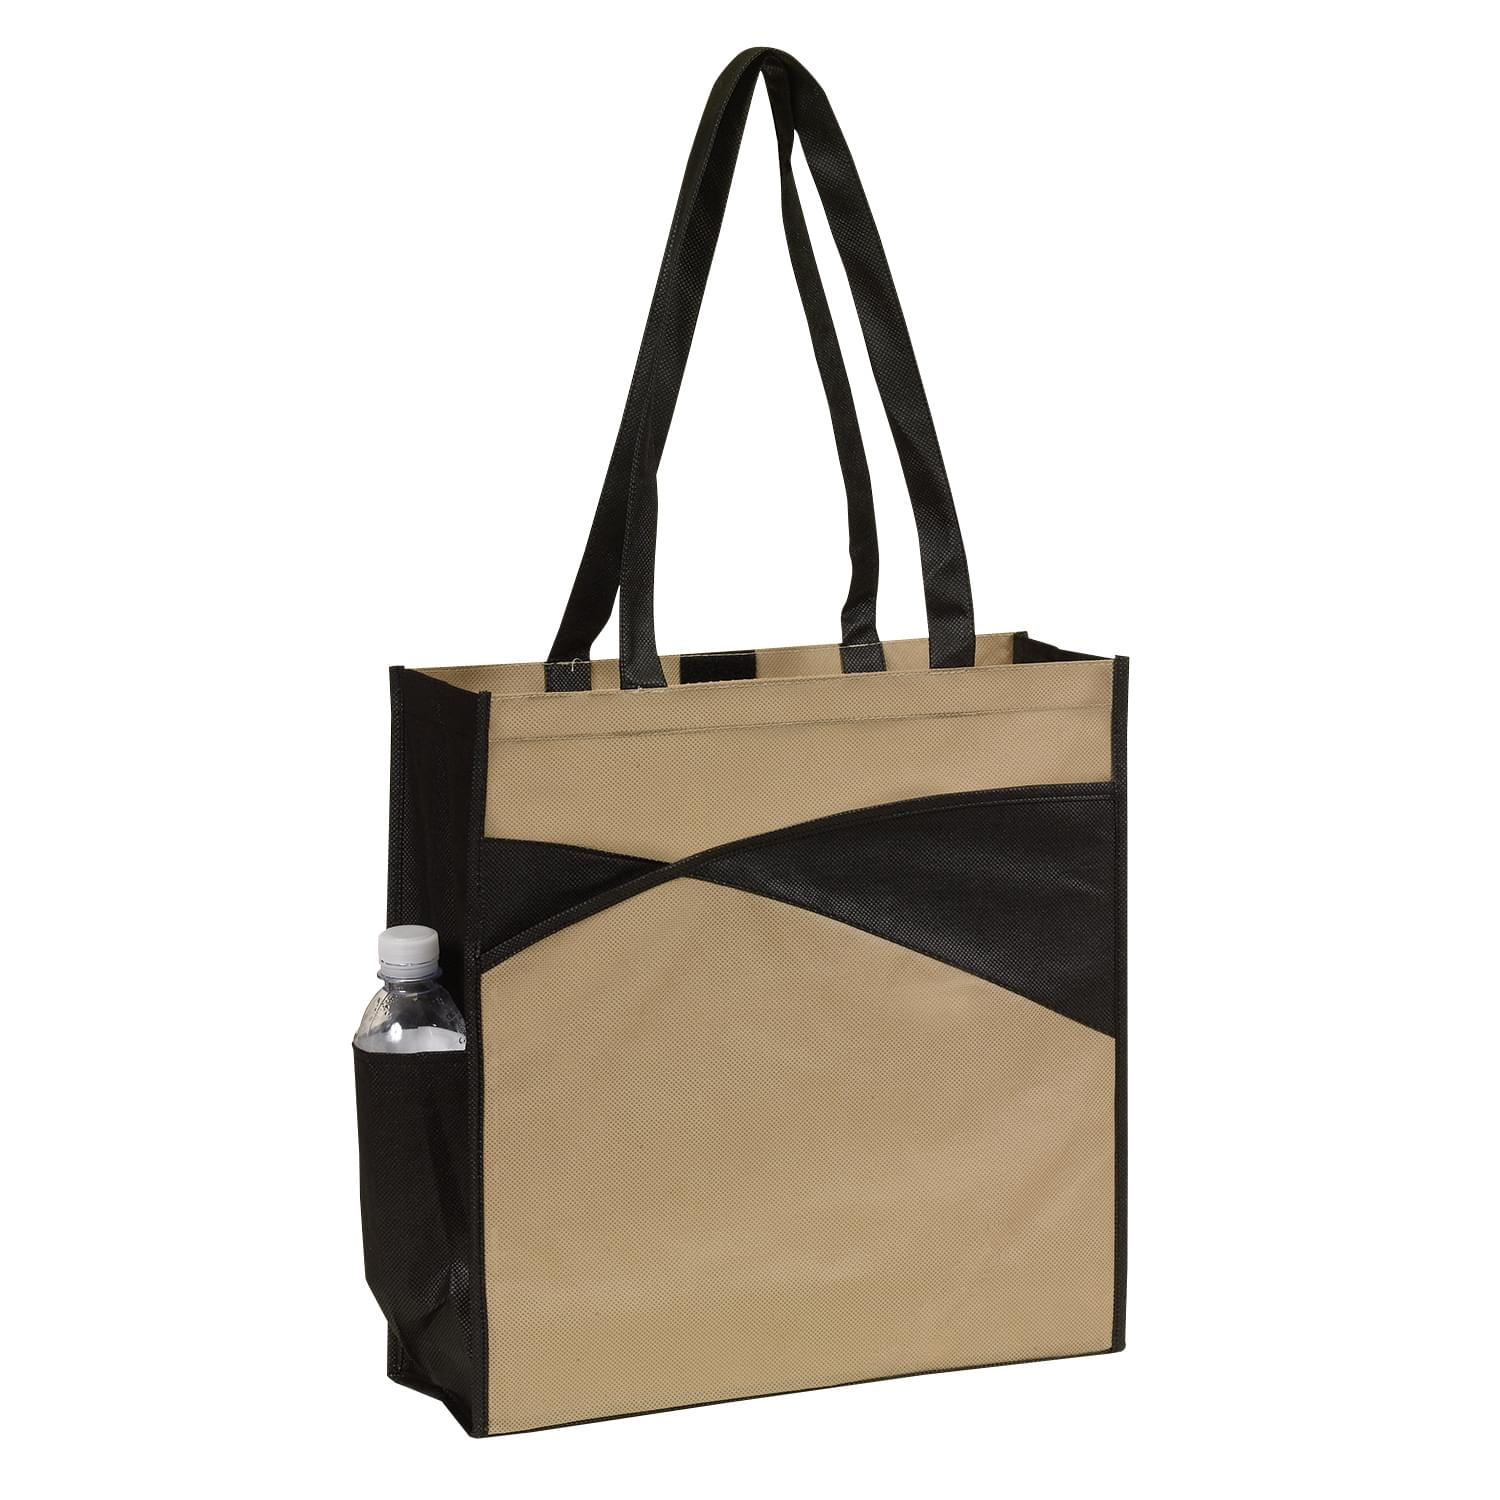 Recyclable Pocket Identity Tote Bags